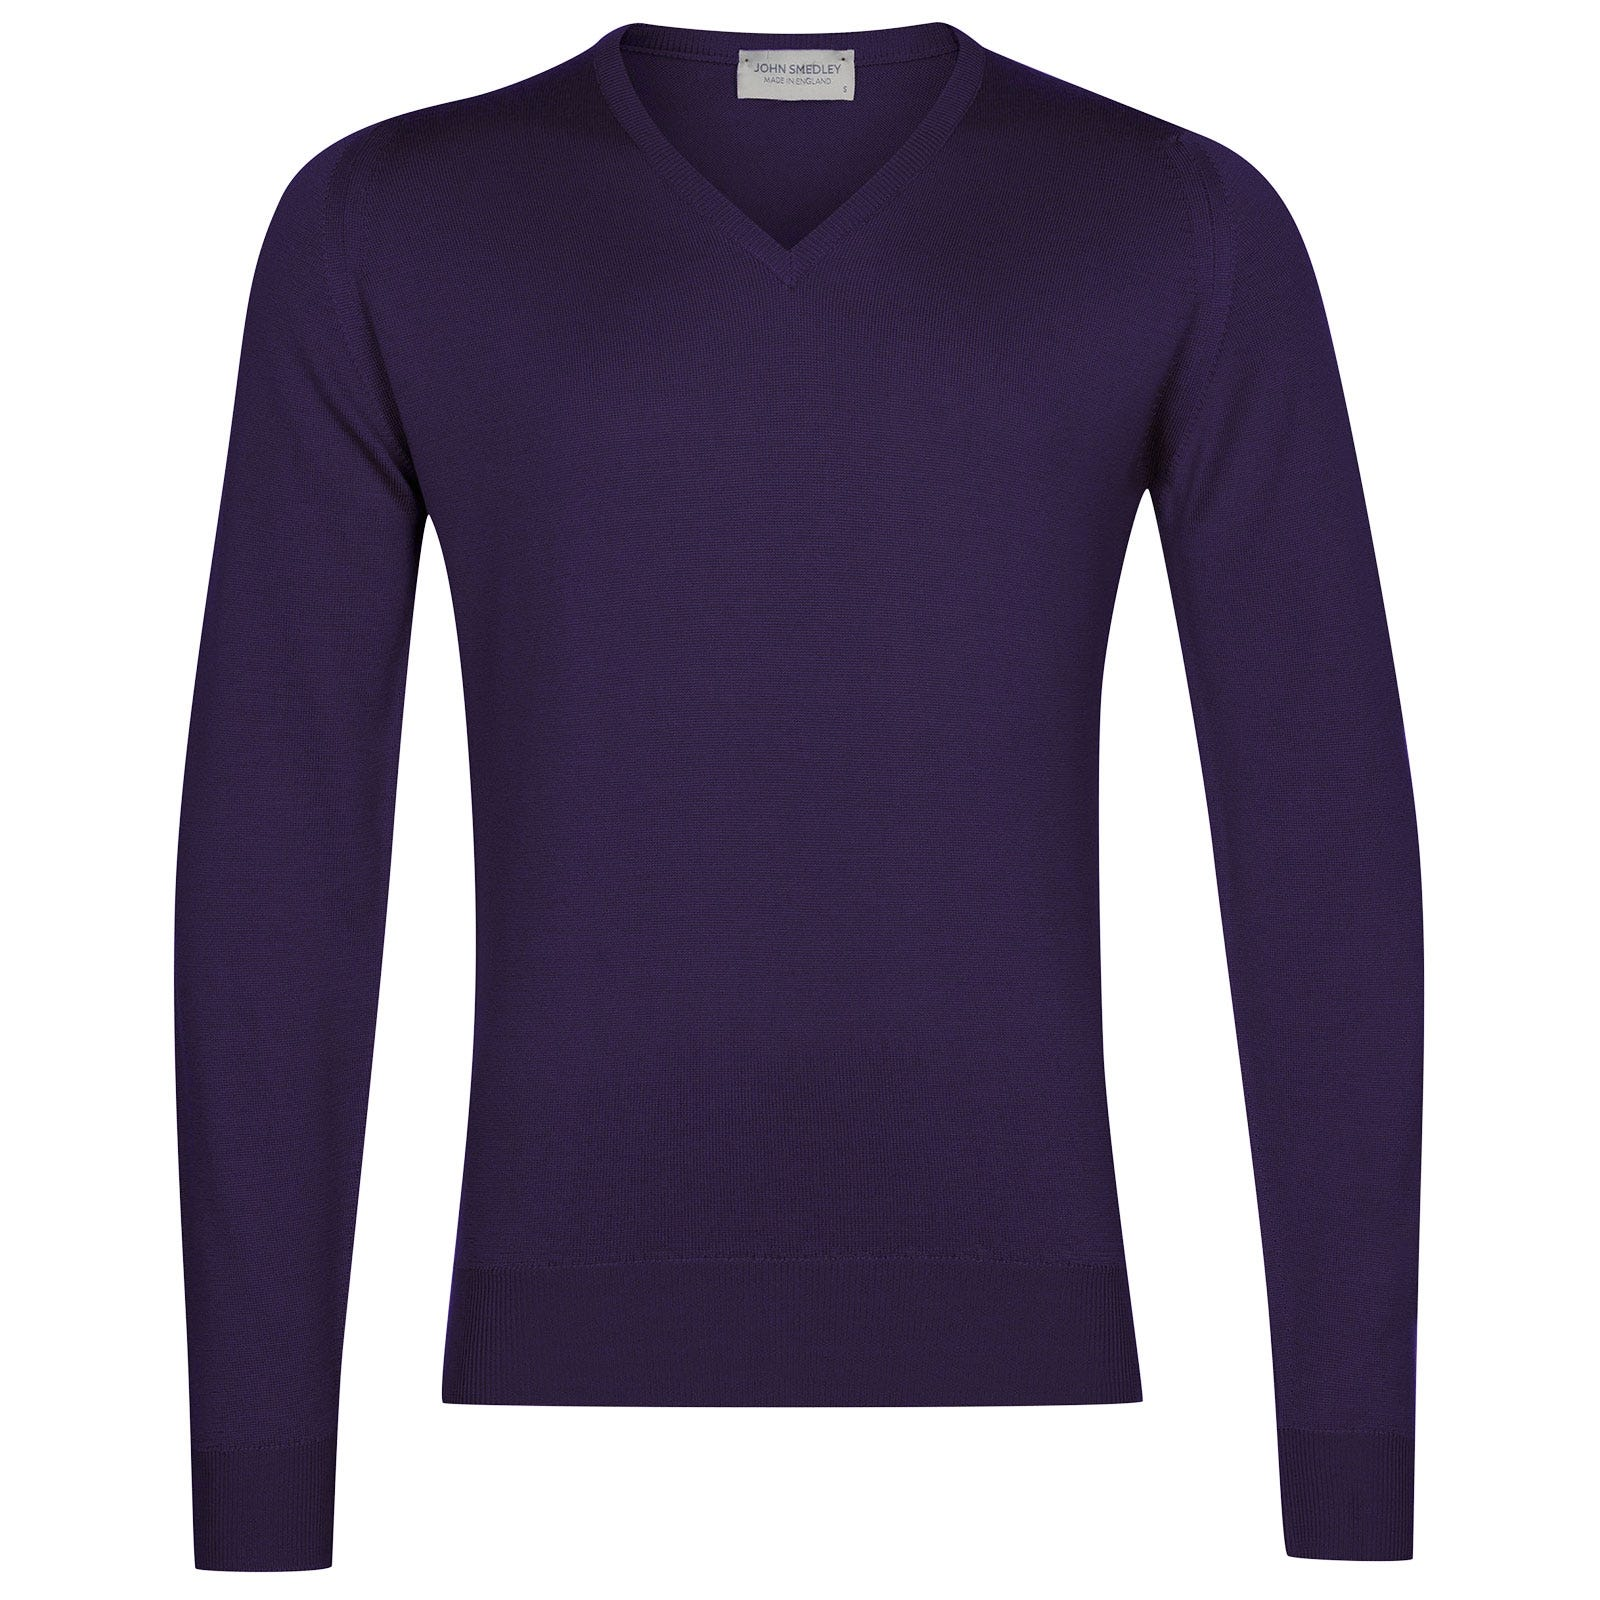 John Smedley Blenheim Merino Wool Pullover in Elderberry Purple-S